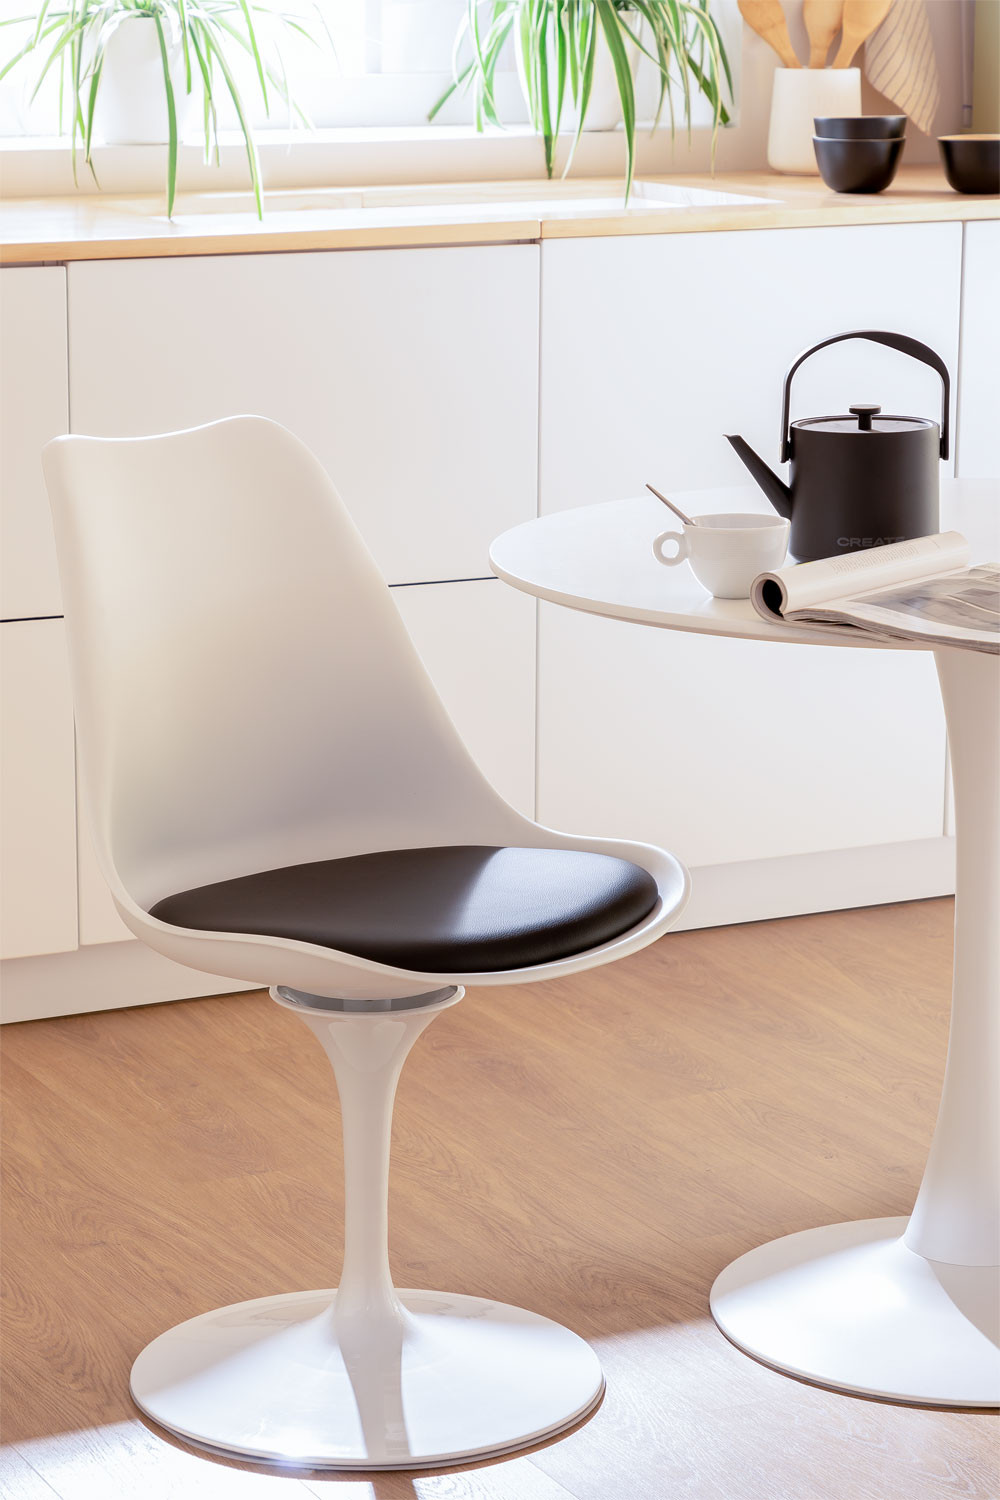 Dining Chair Yosh, gallery image 1